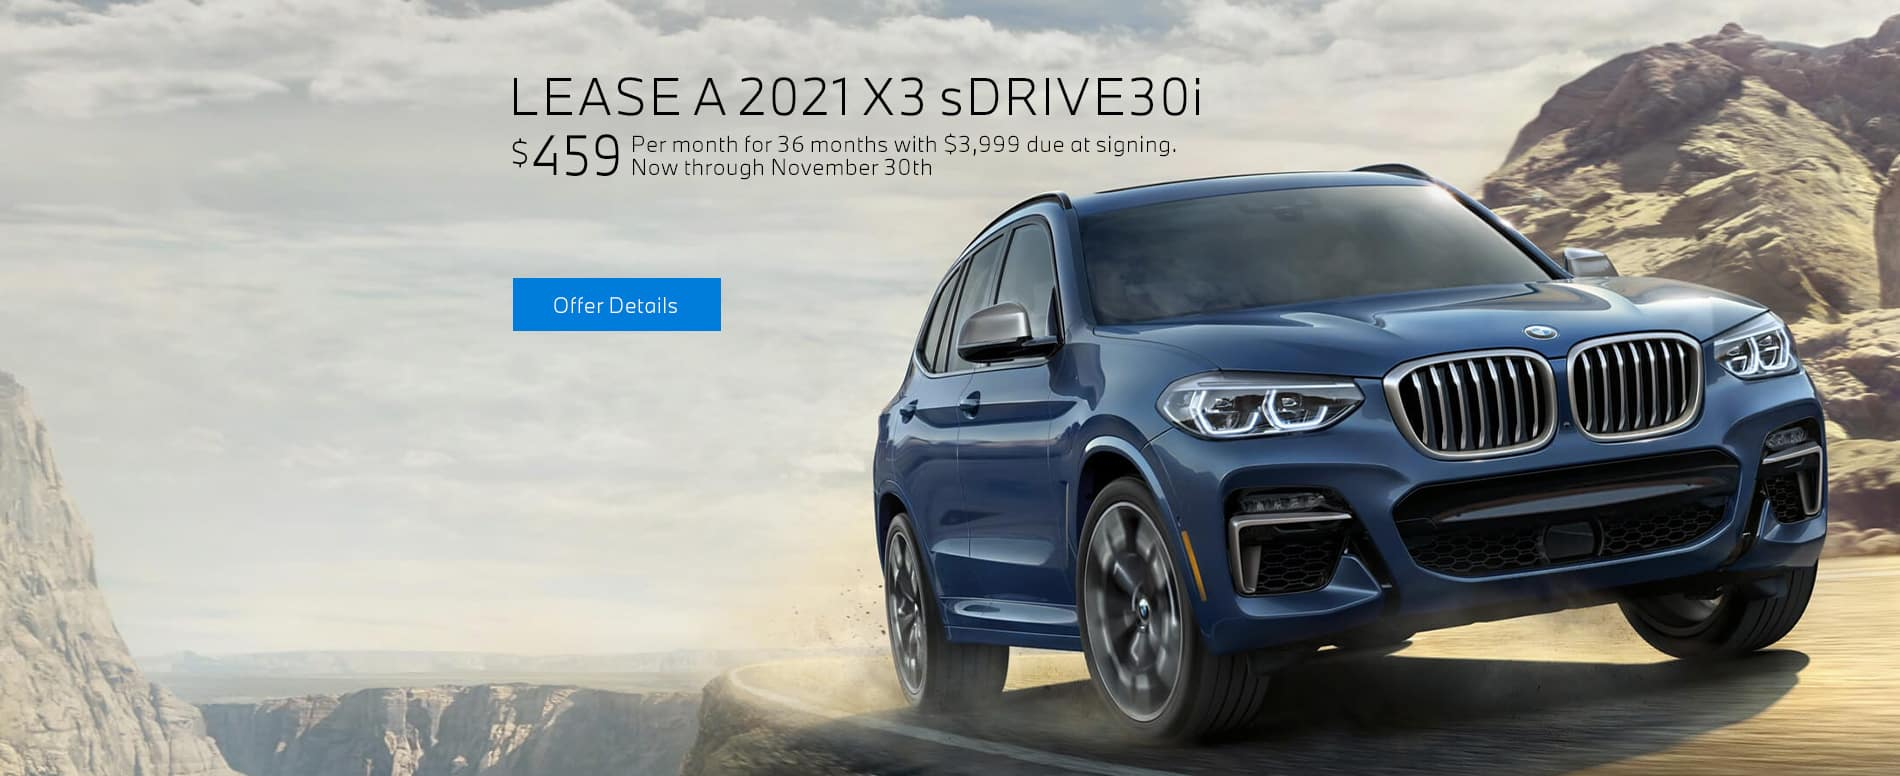 LEASE A 2021 X3 sDRIVE30i